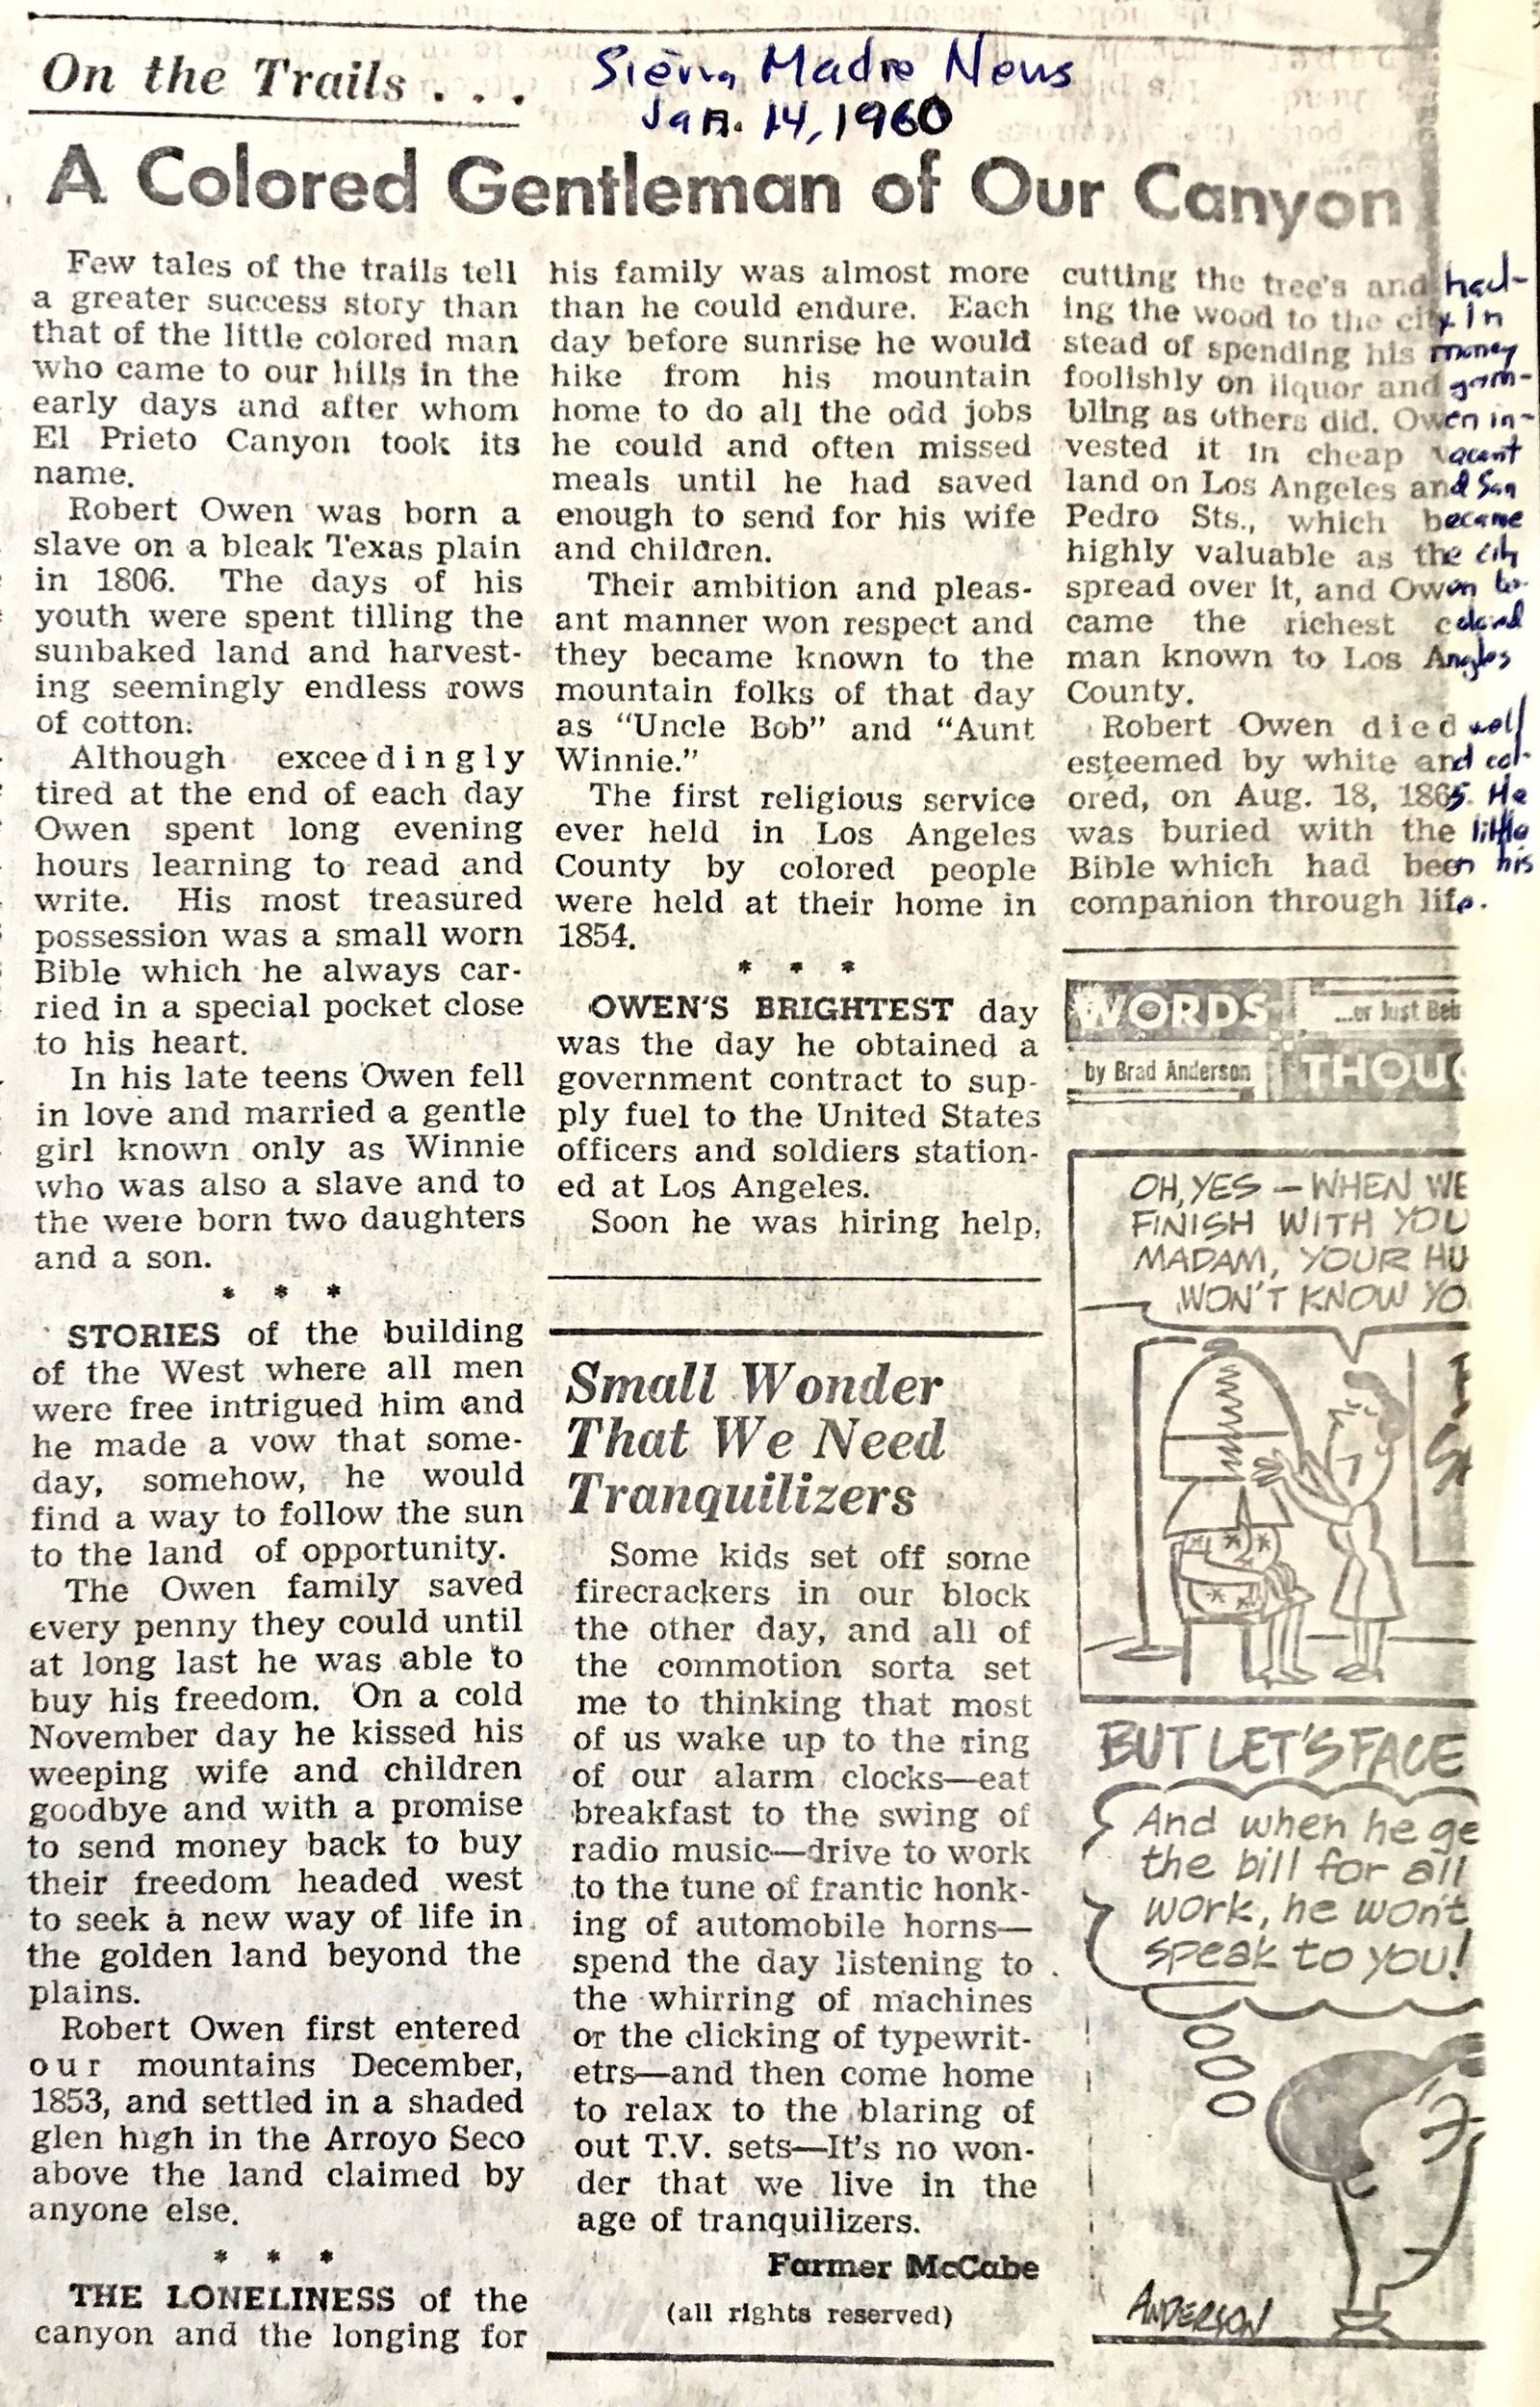 1960 Sierra Madre News article, from the USC Library John Robinson Collection via Paul Ayers